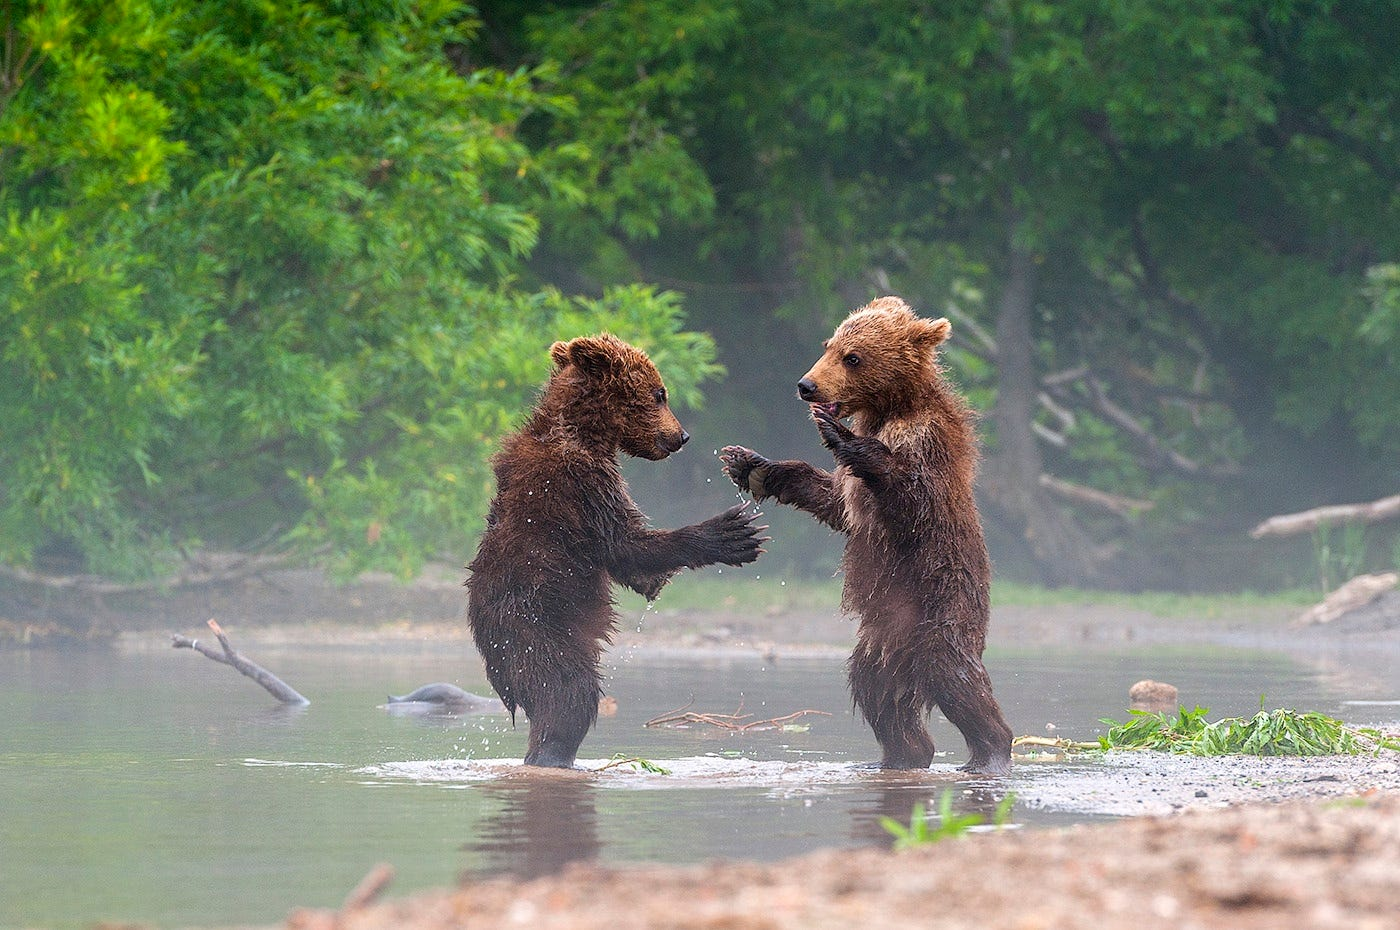 Ungentle charm of Kamchatka bears in photos by Sergey Ivanov - 21